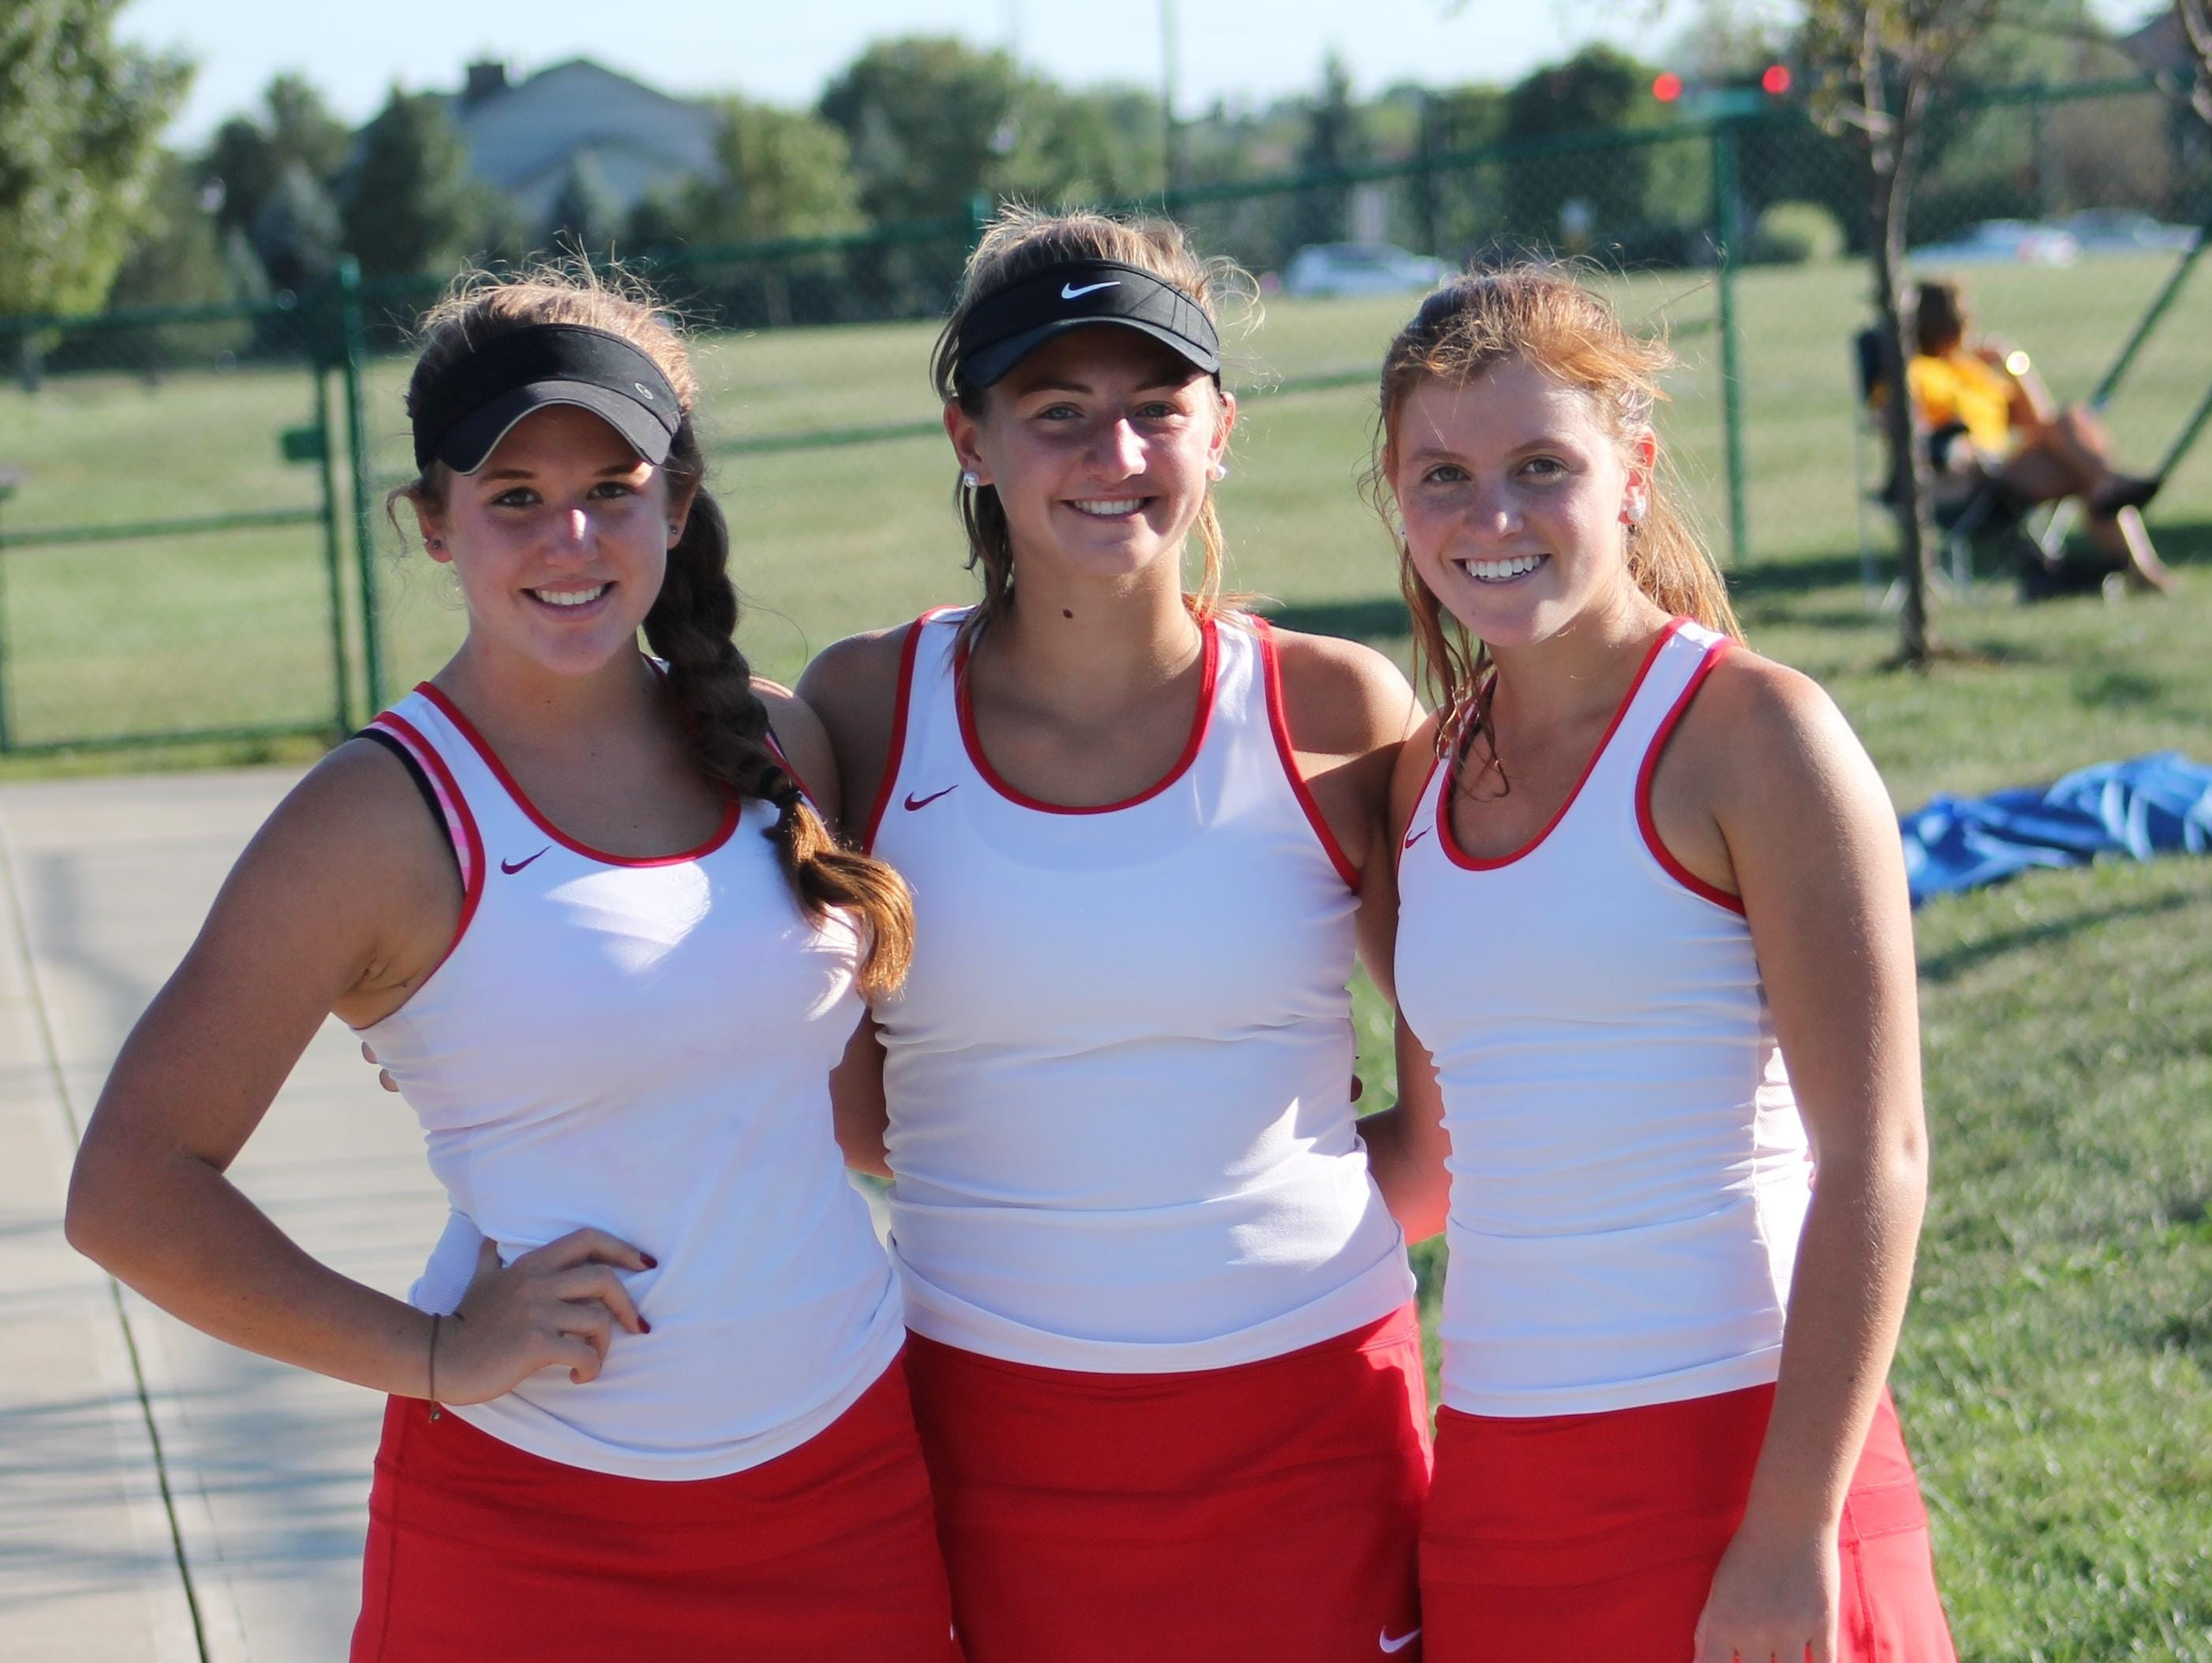 Indian Hill's singles players are, from left, Meredith Breda, Caroline Andersen and Gracey Hirsch. Andersen plays first, Hirsch second and Breda third singles.